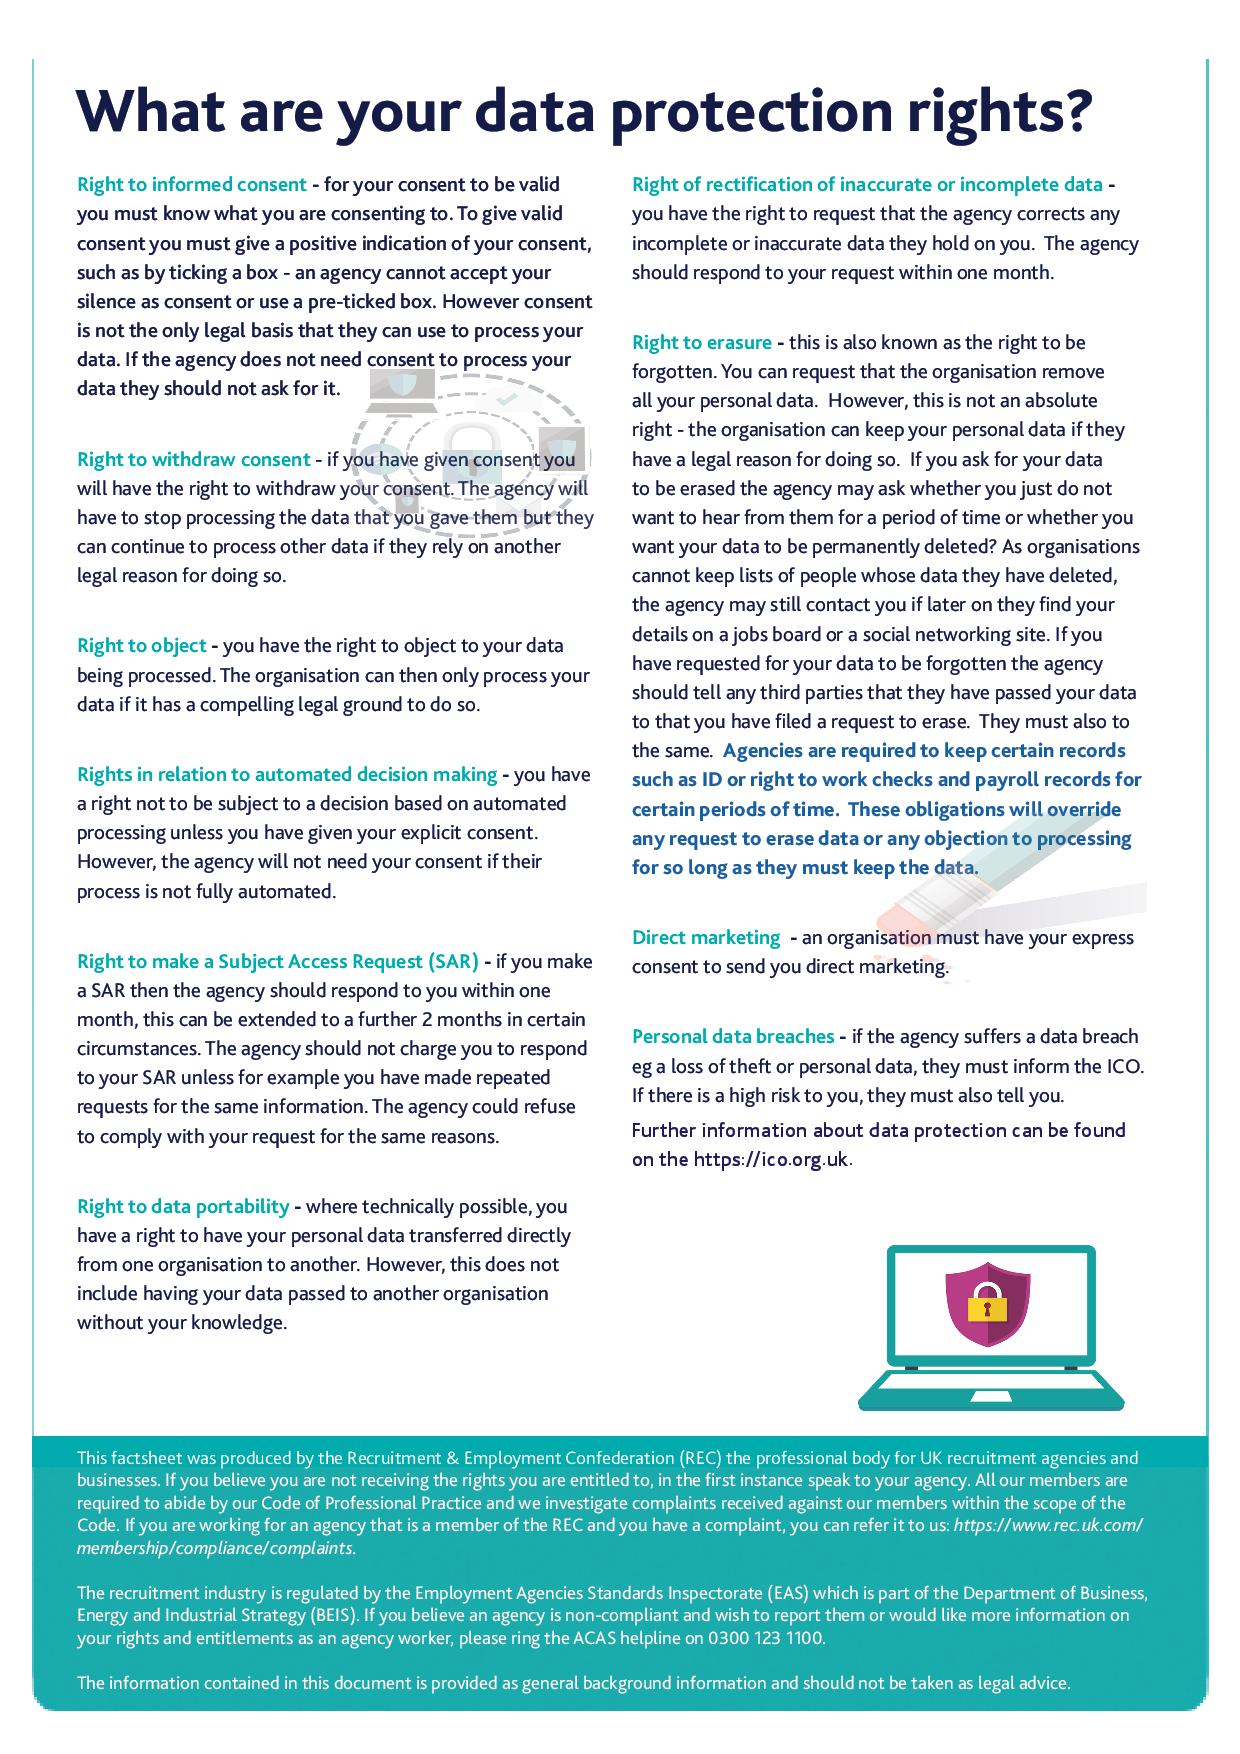 REC Know Your Data Protection Rights-page-002